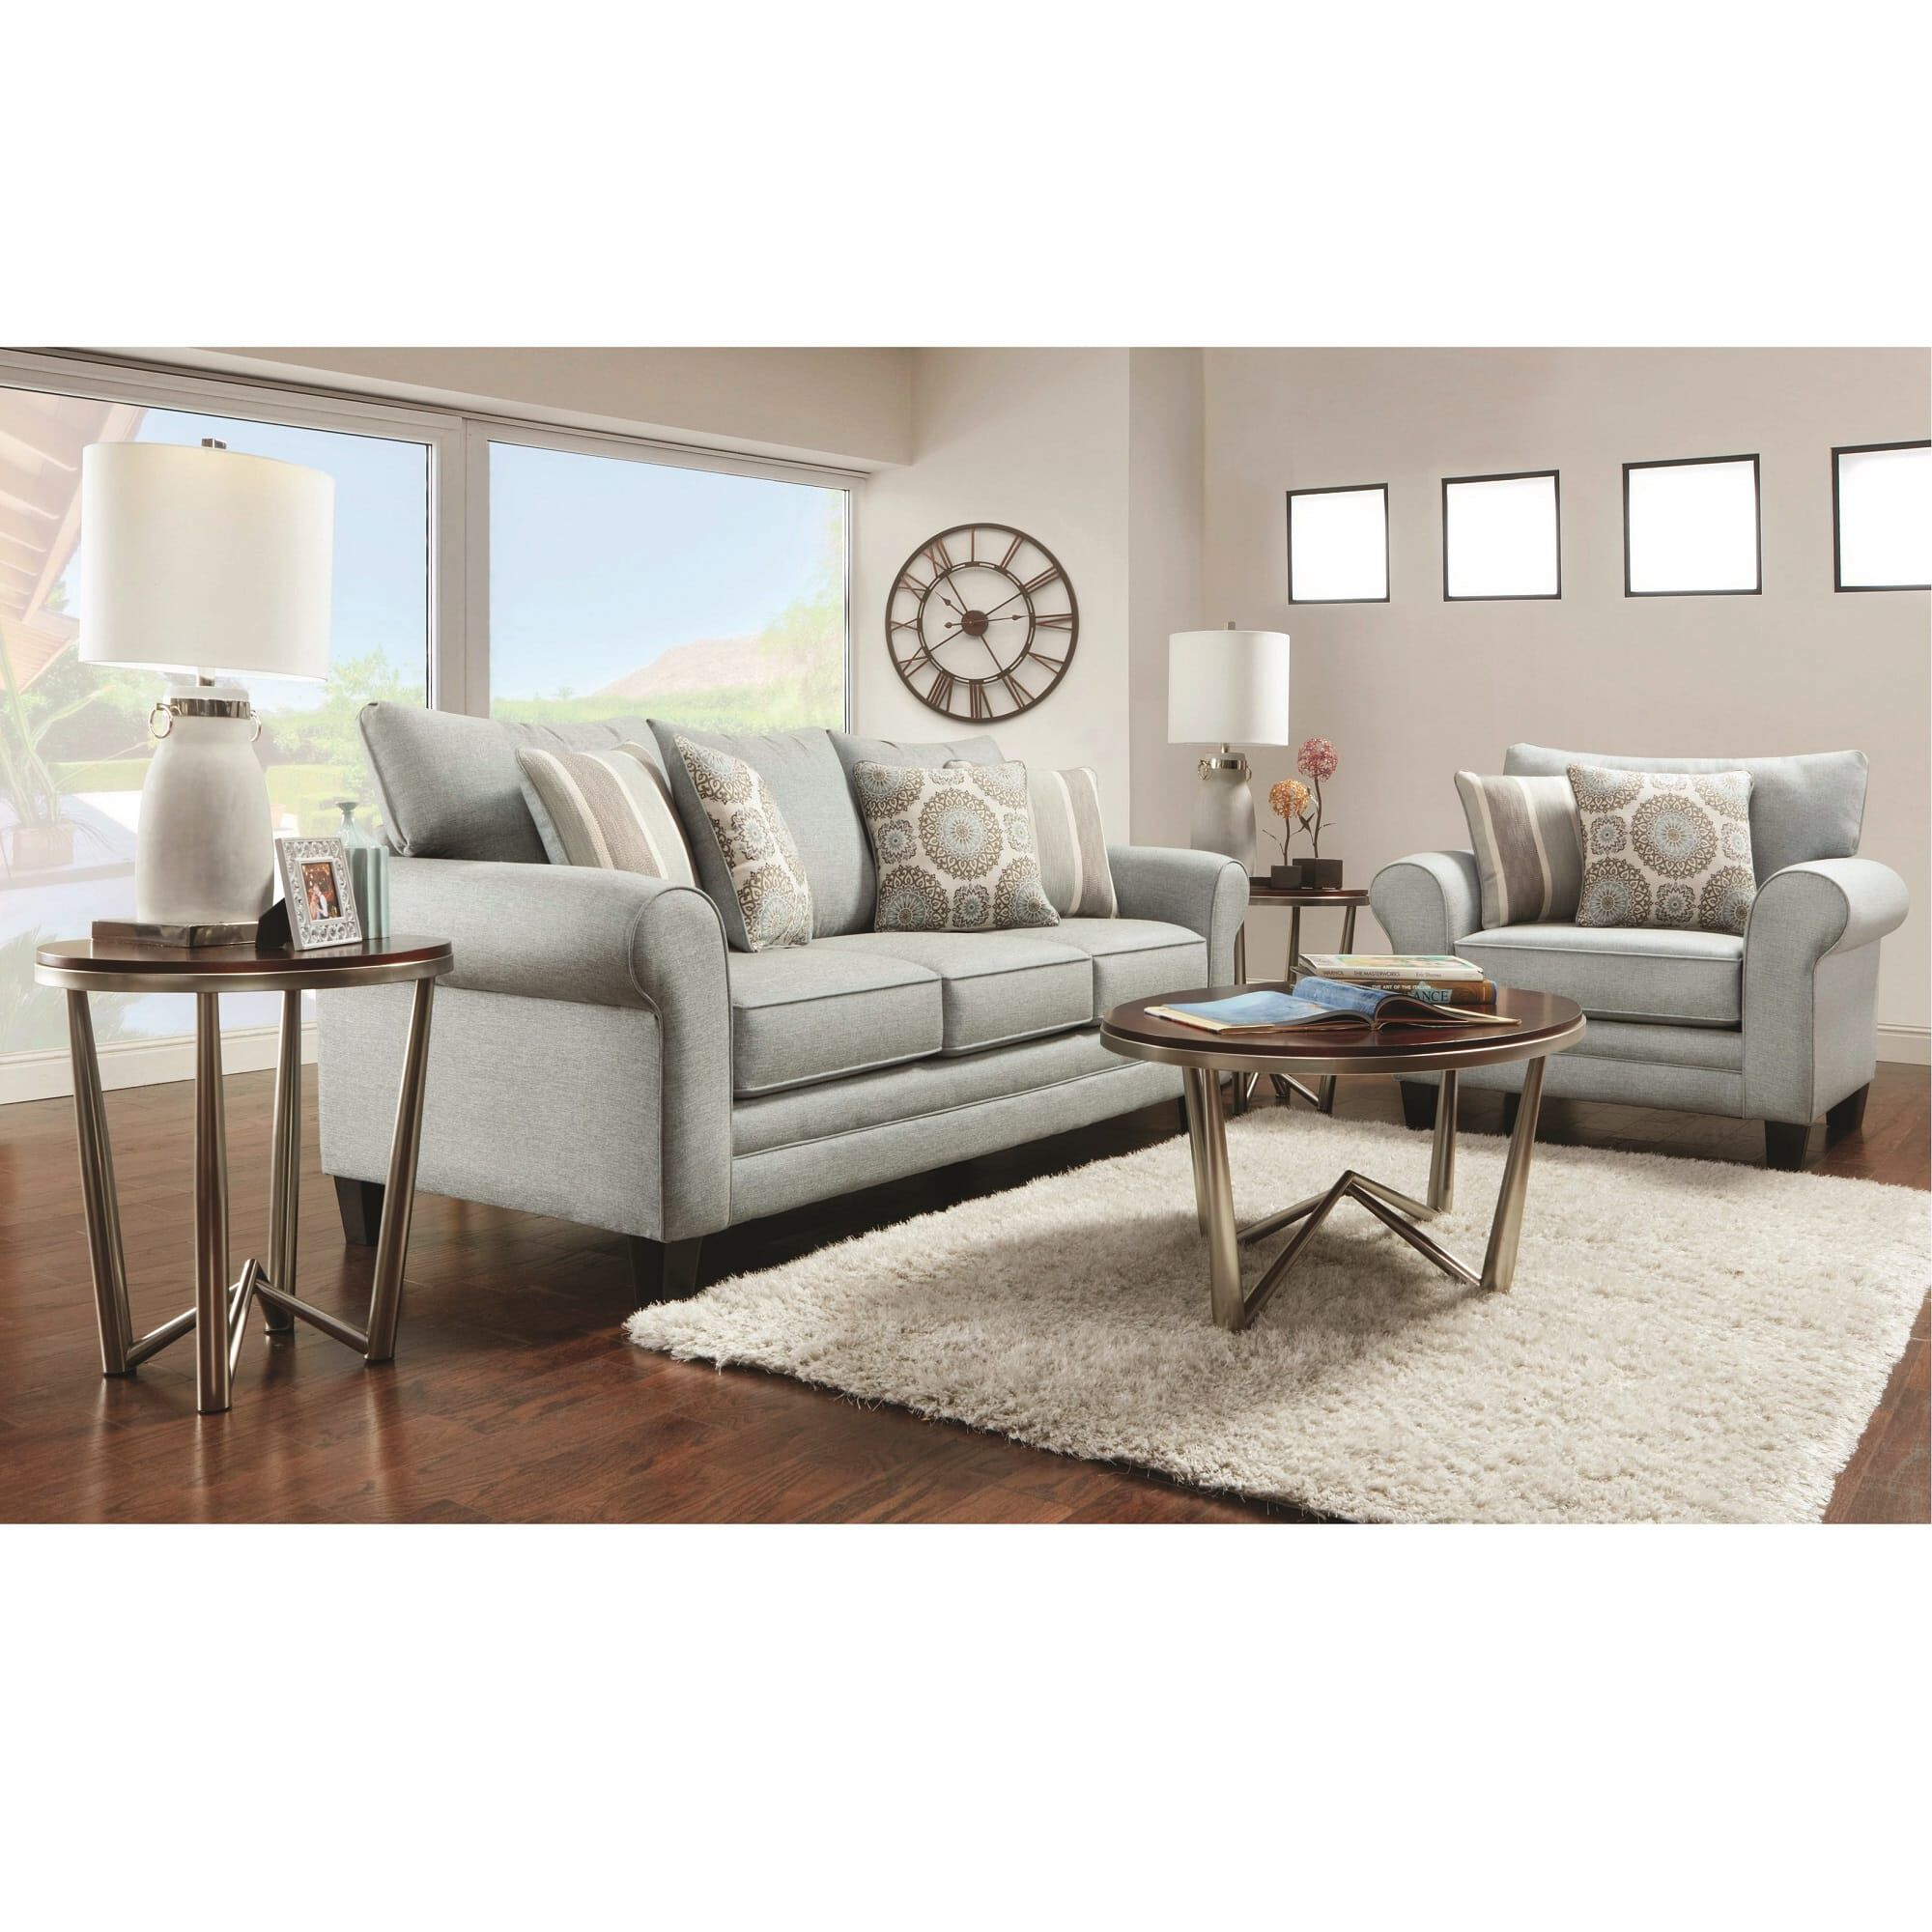 2 Piece Lara Living Room Collection Fusion Furniture